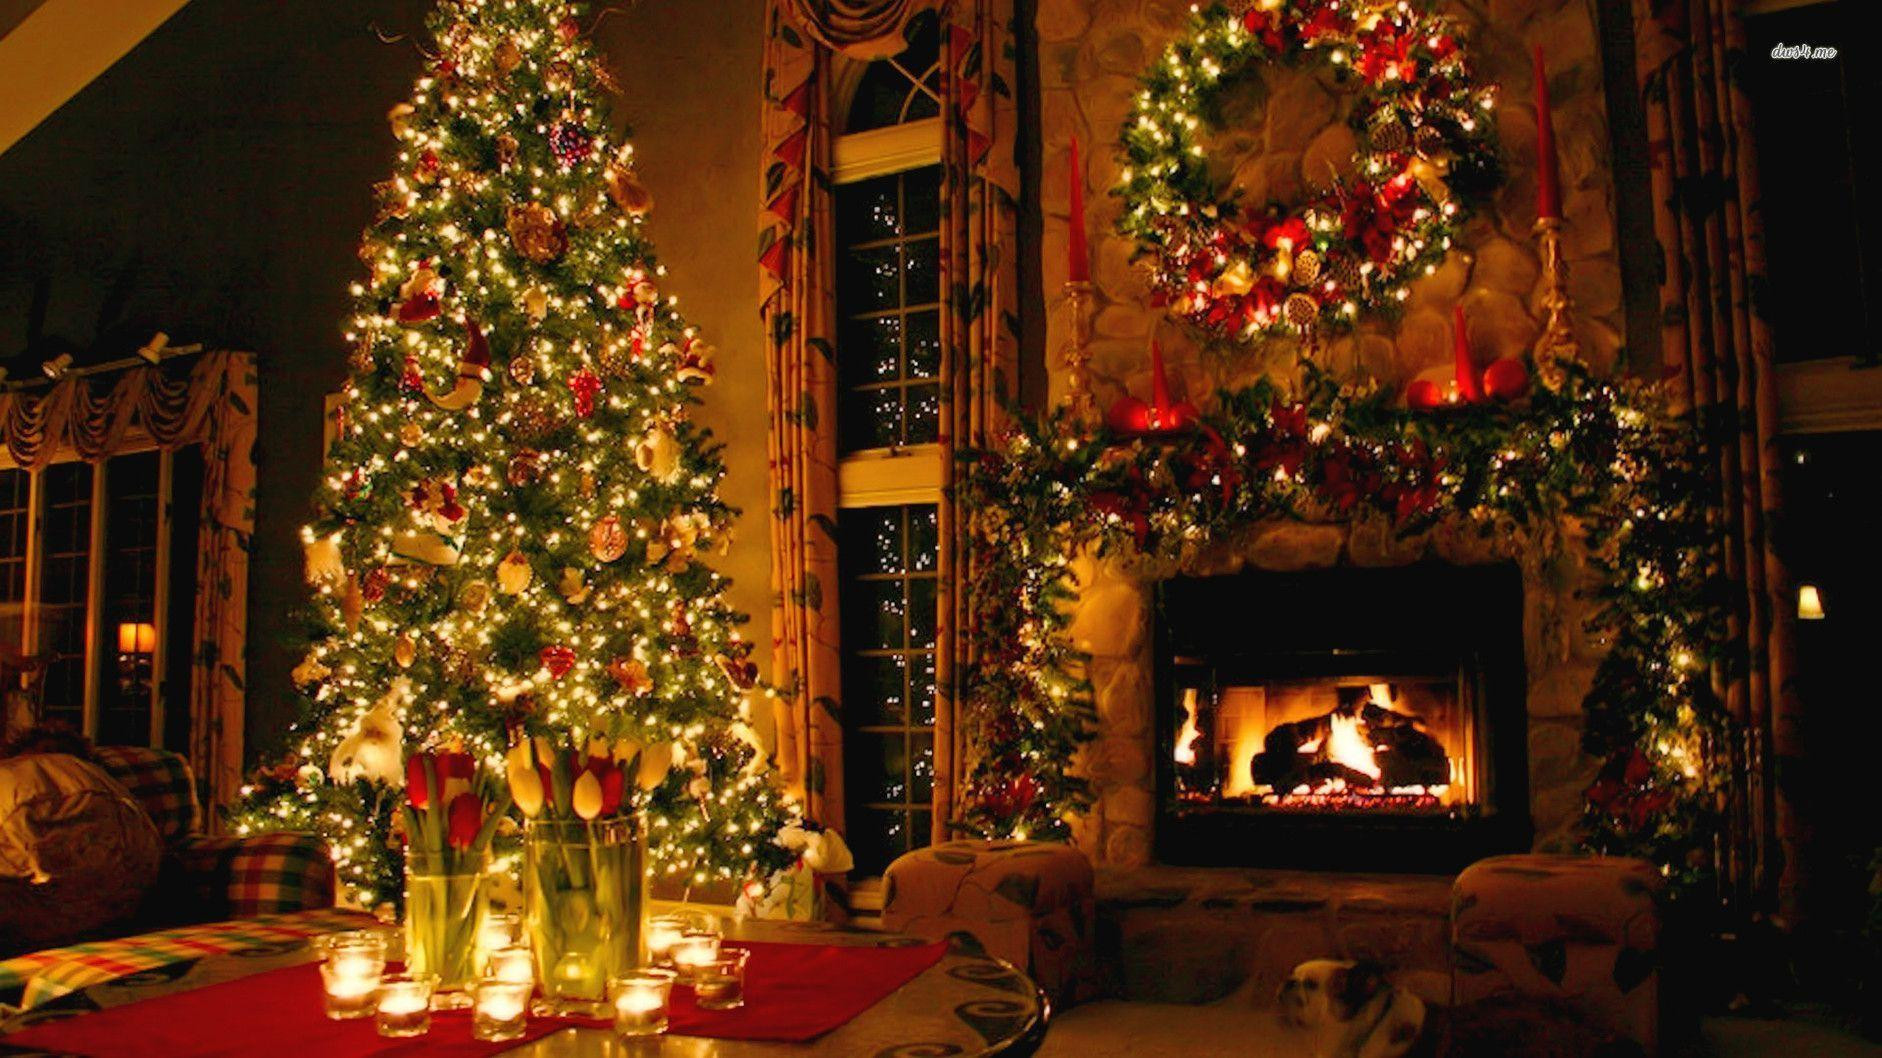 Christmas Wallpaper Fireplace Awesome Christmas Fireplace Backgrounds Wallpaper Cave